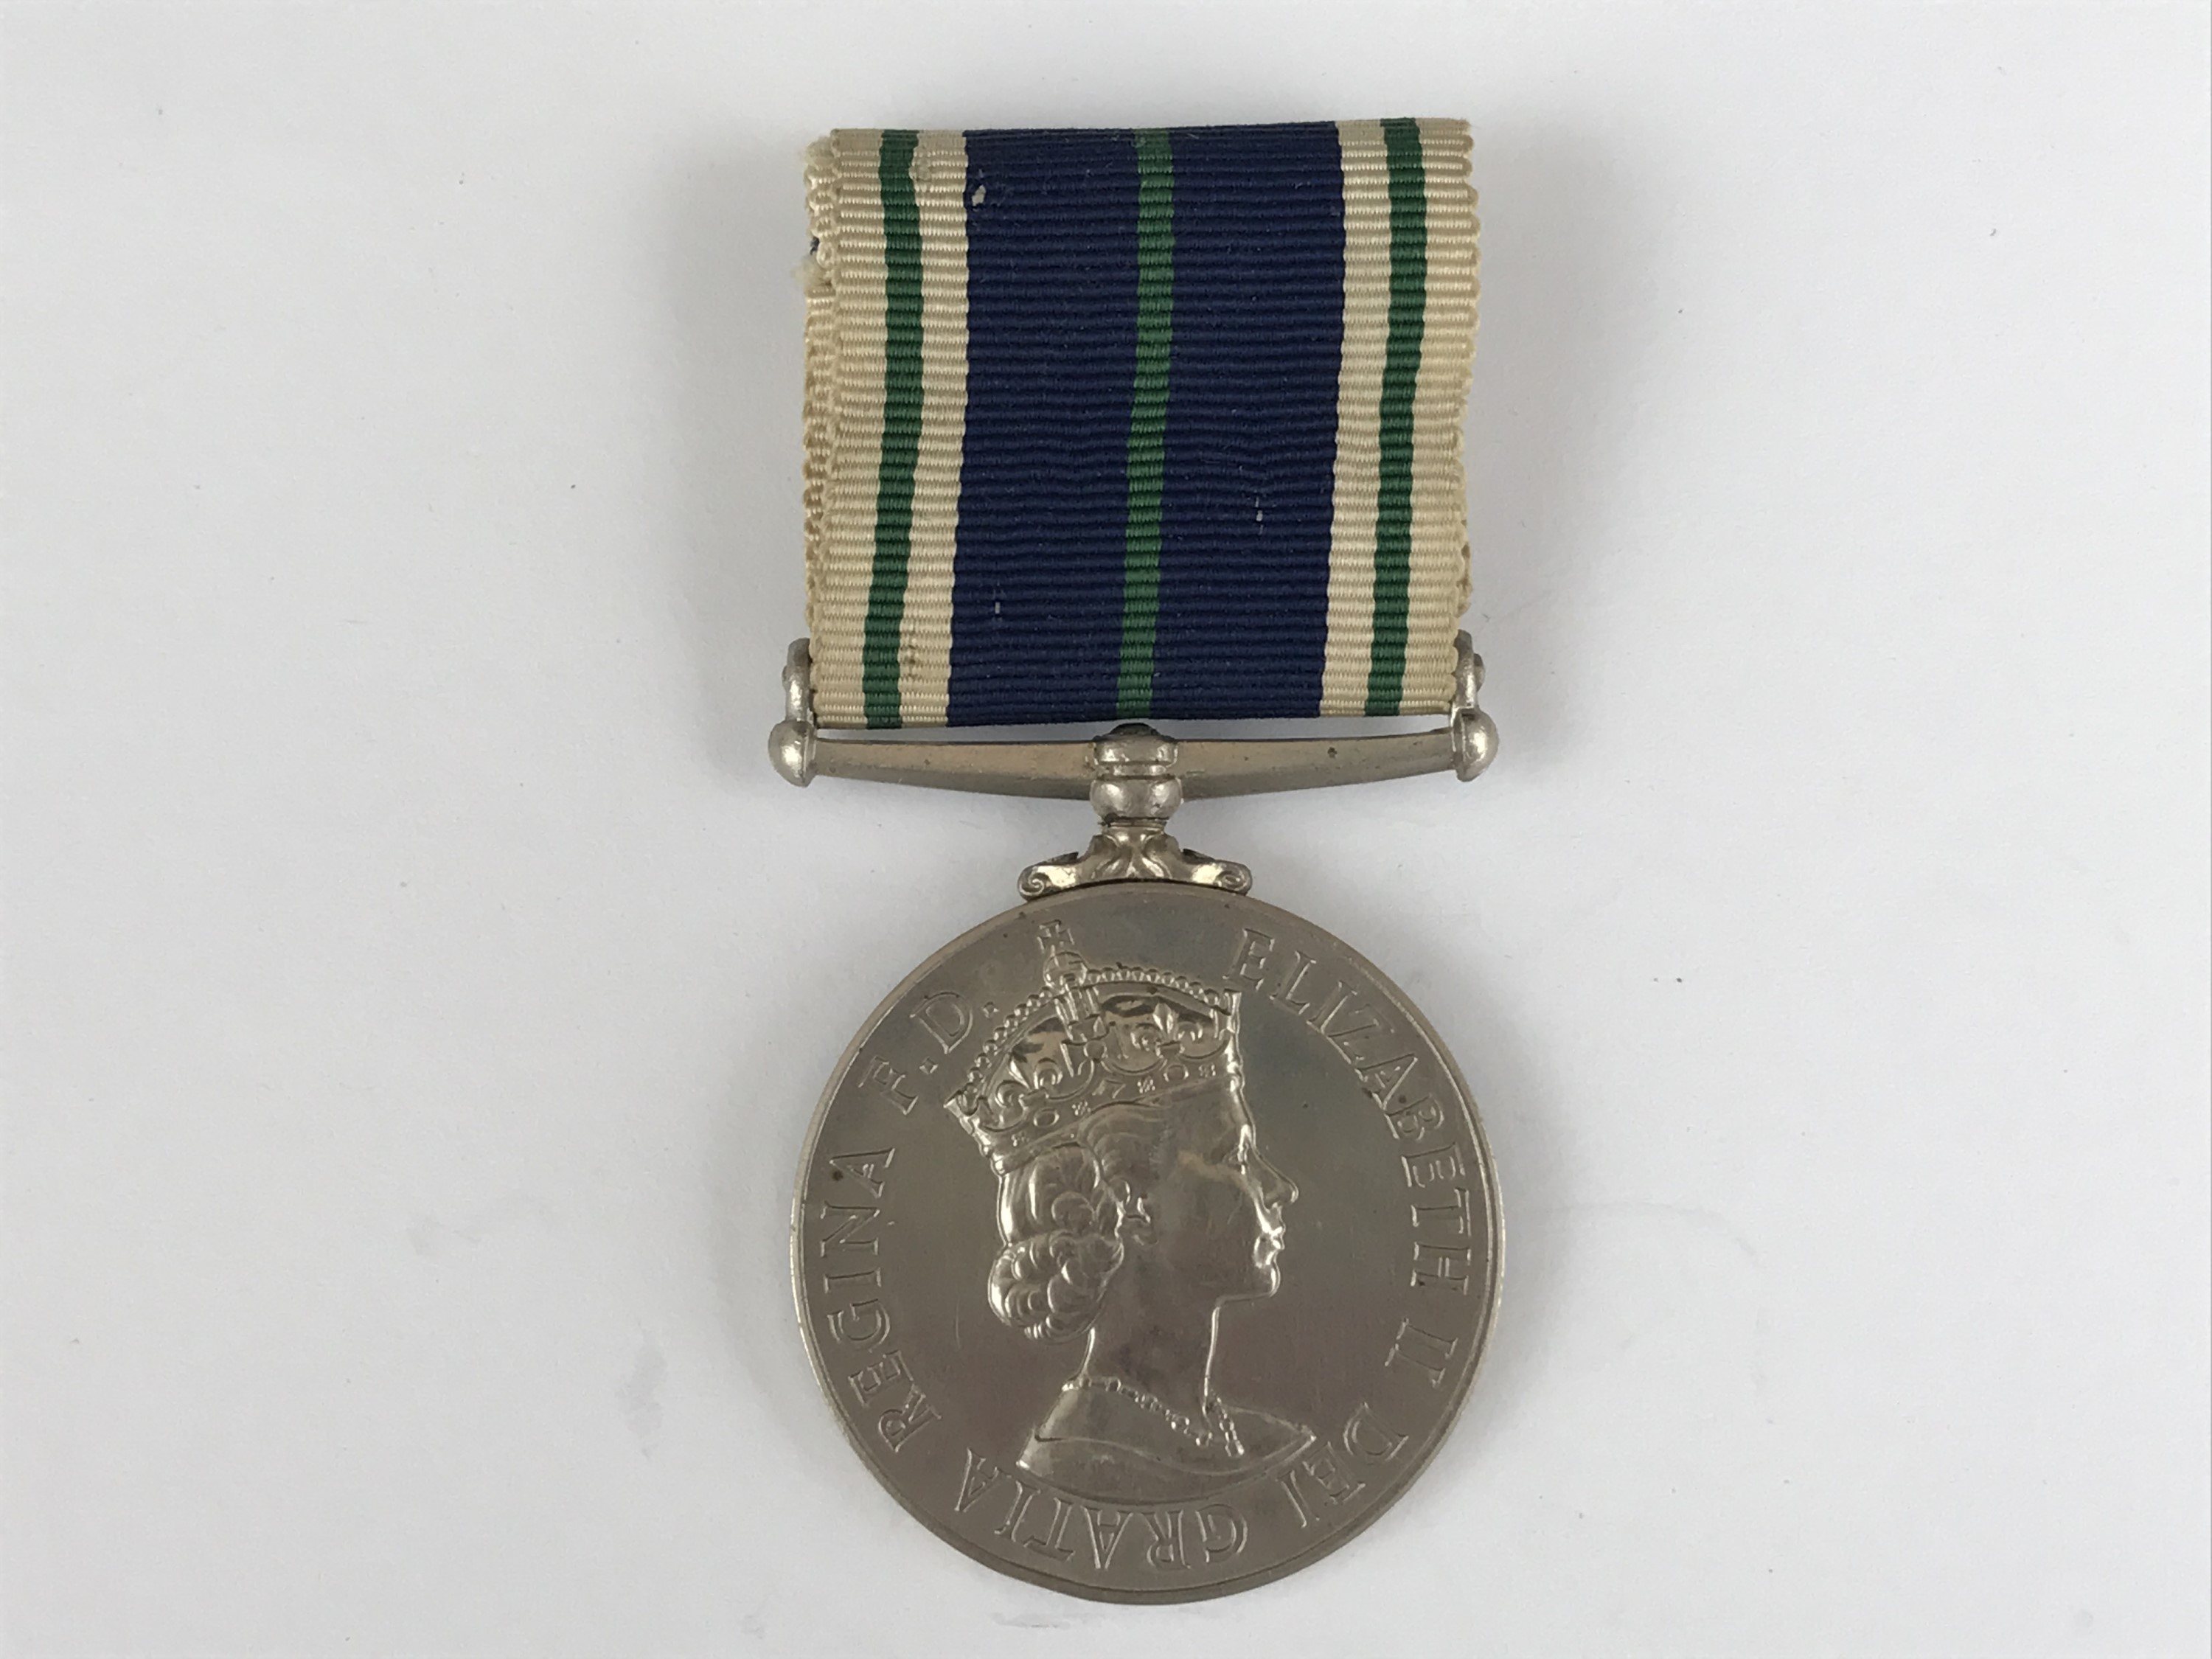 Lot 24 - A QEII Royal Navy Auxiliary Service Long Service medal to Miss I D Marsh